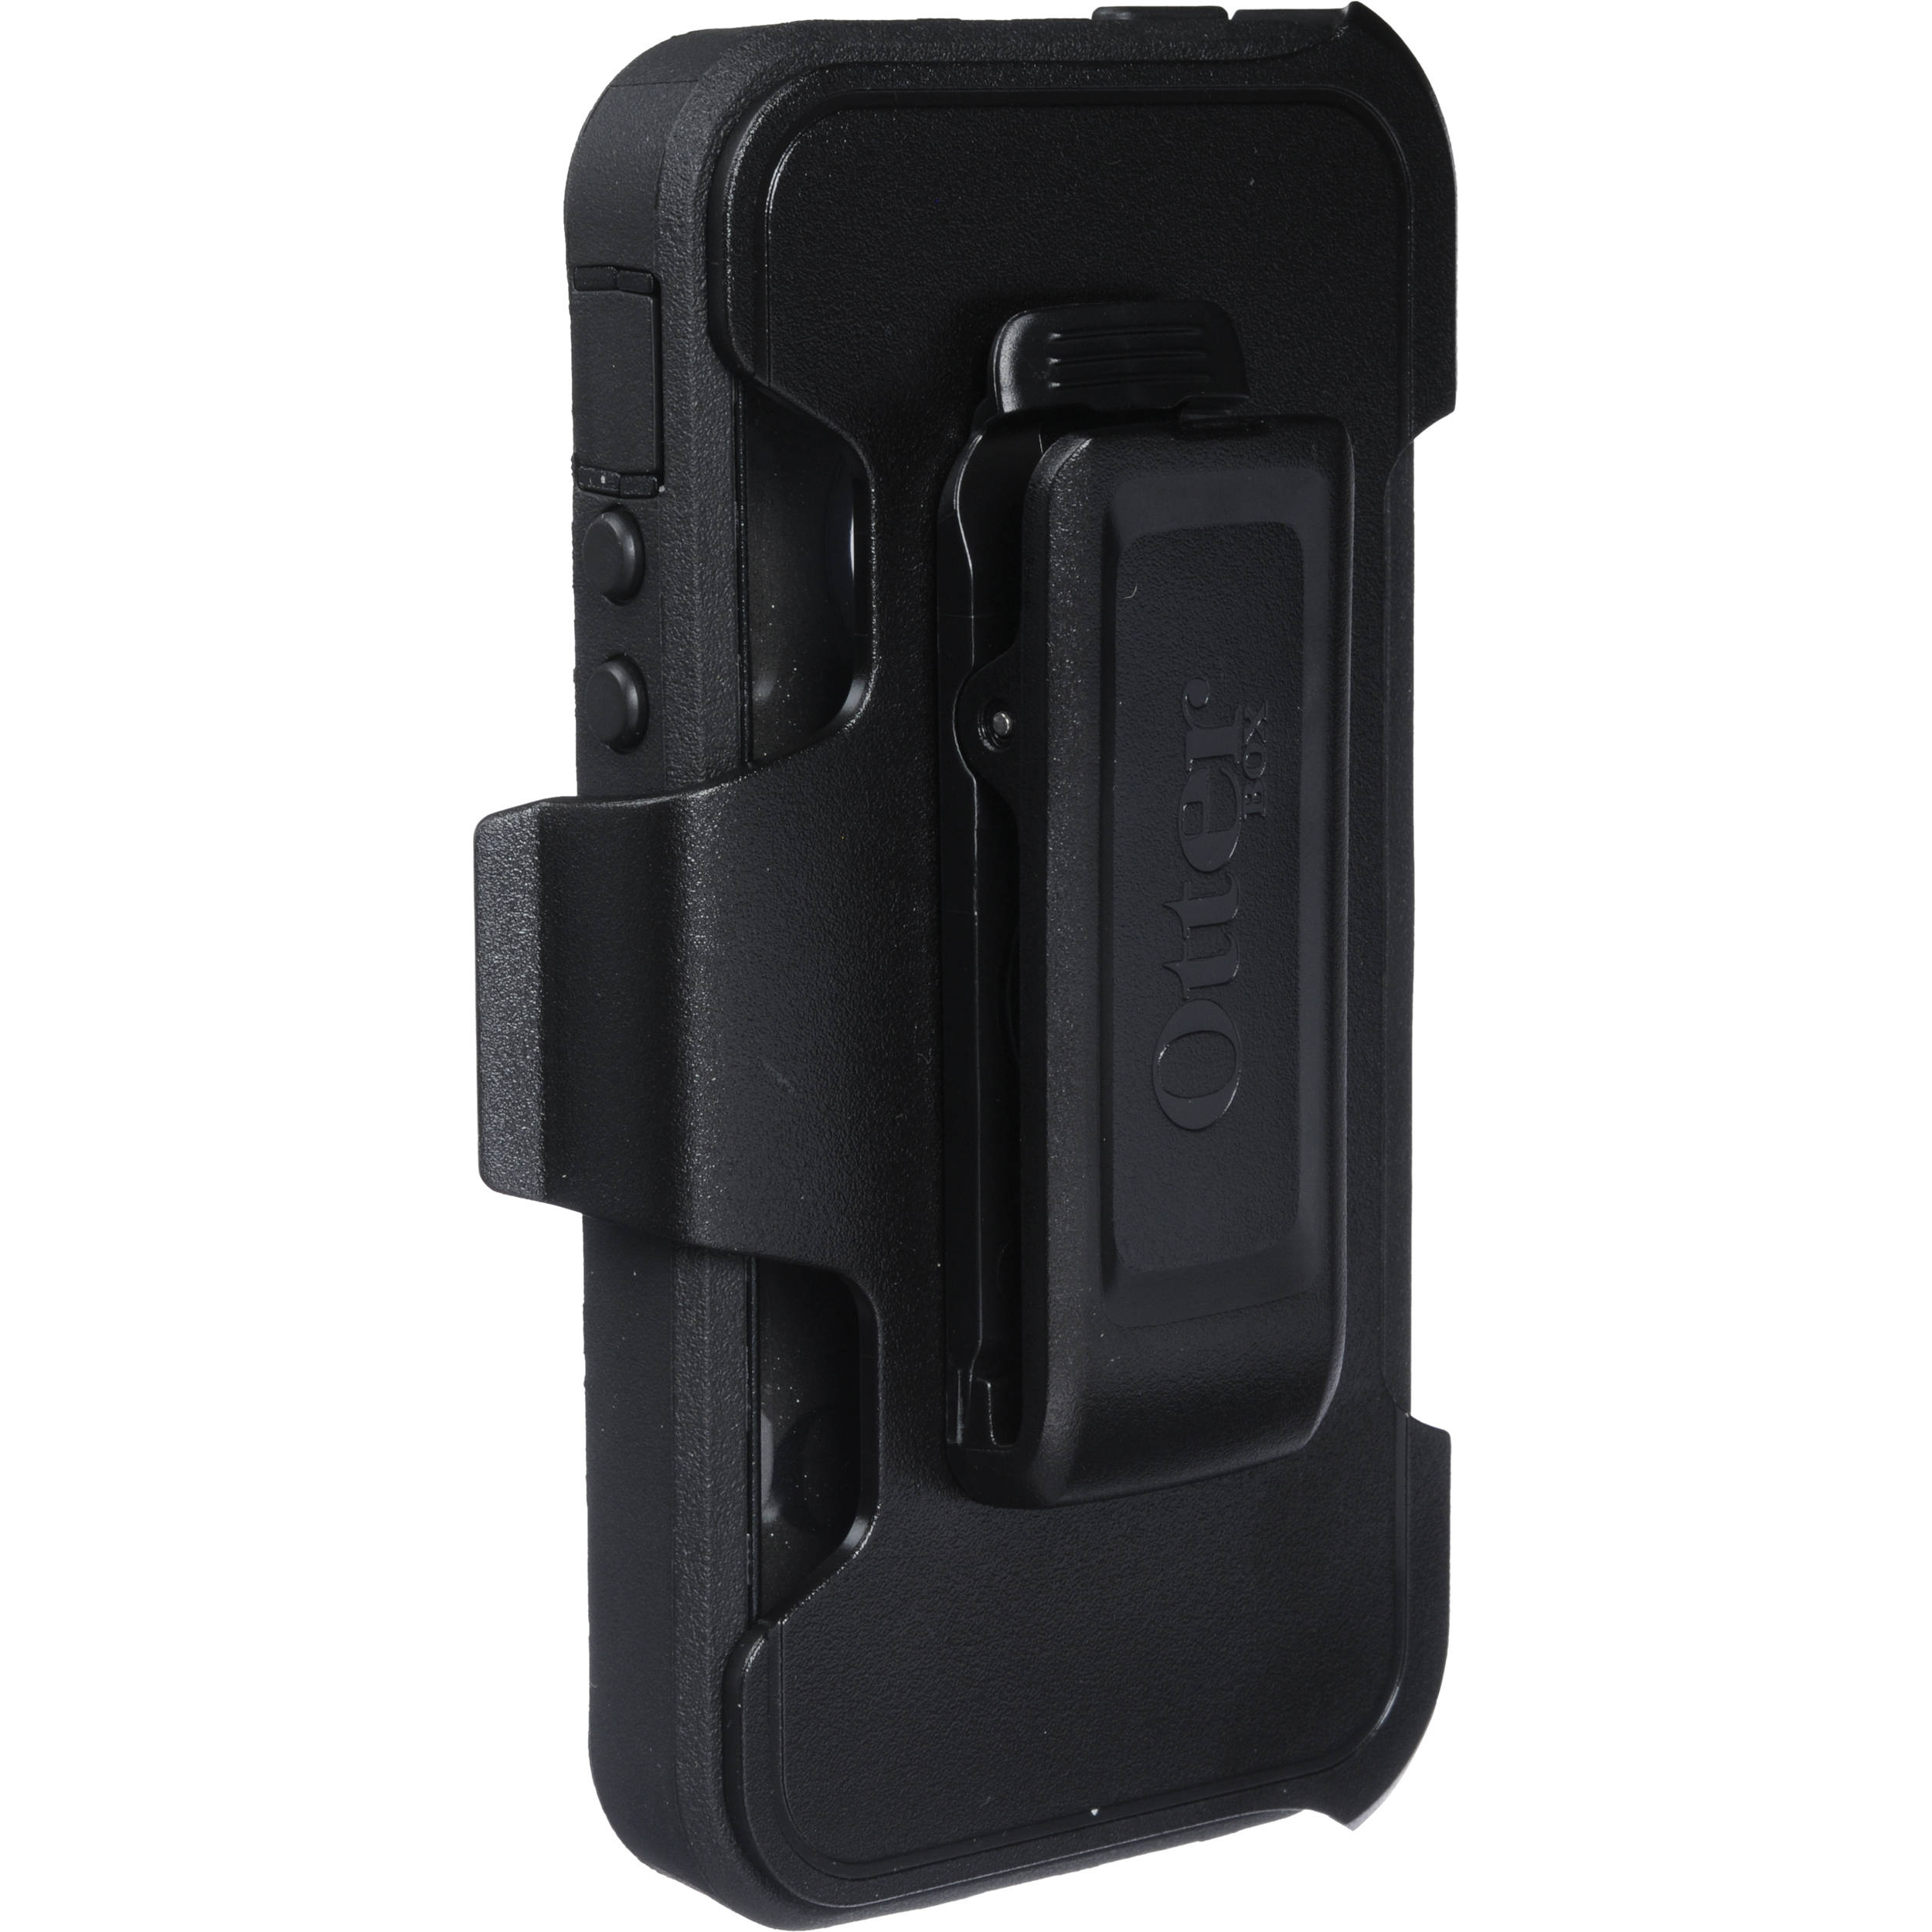 sports shoes 26a6e a942d OtterBox Defender Series Case for iPhone 5/5s/SE (Black)